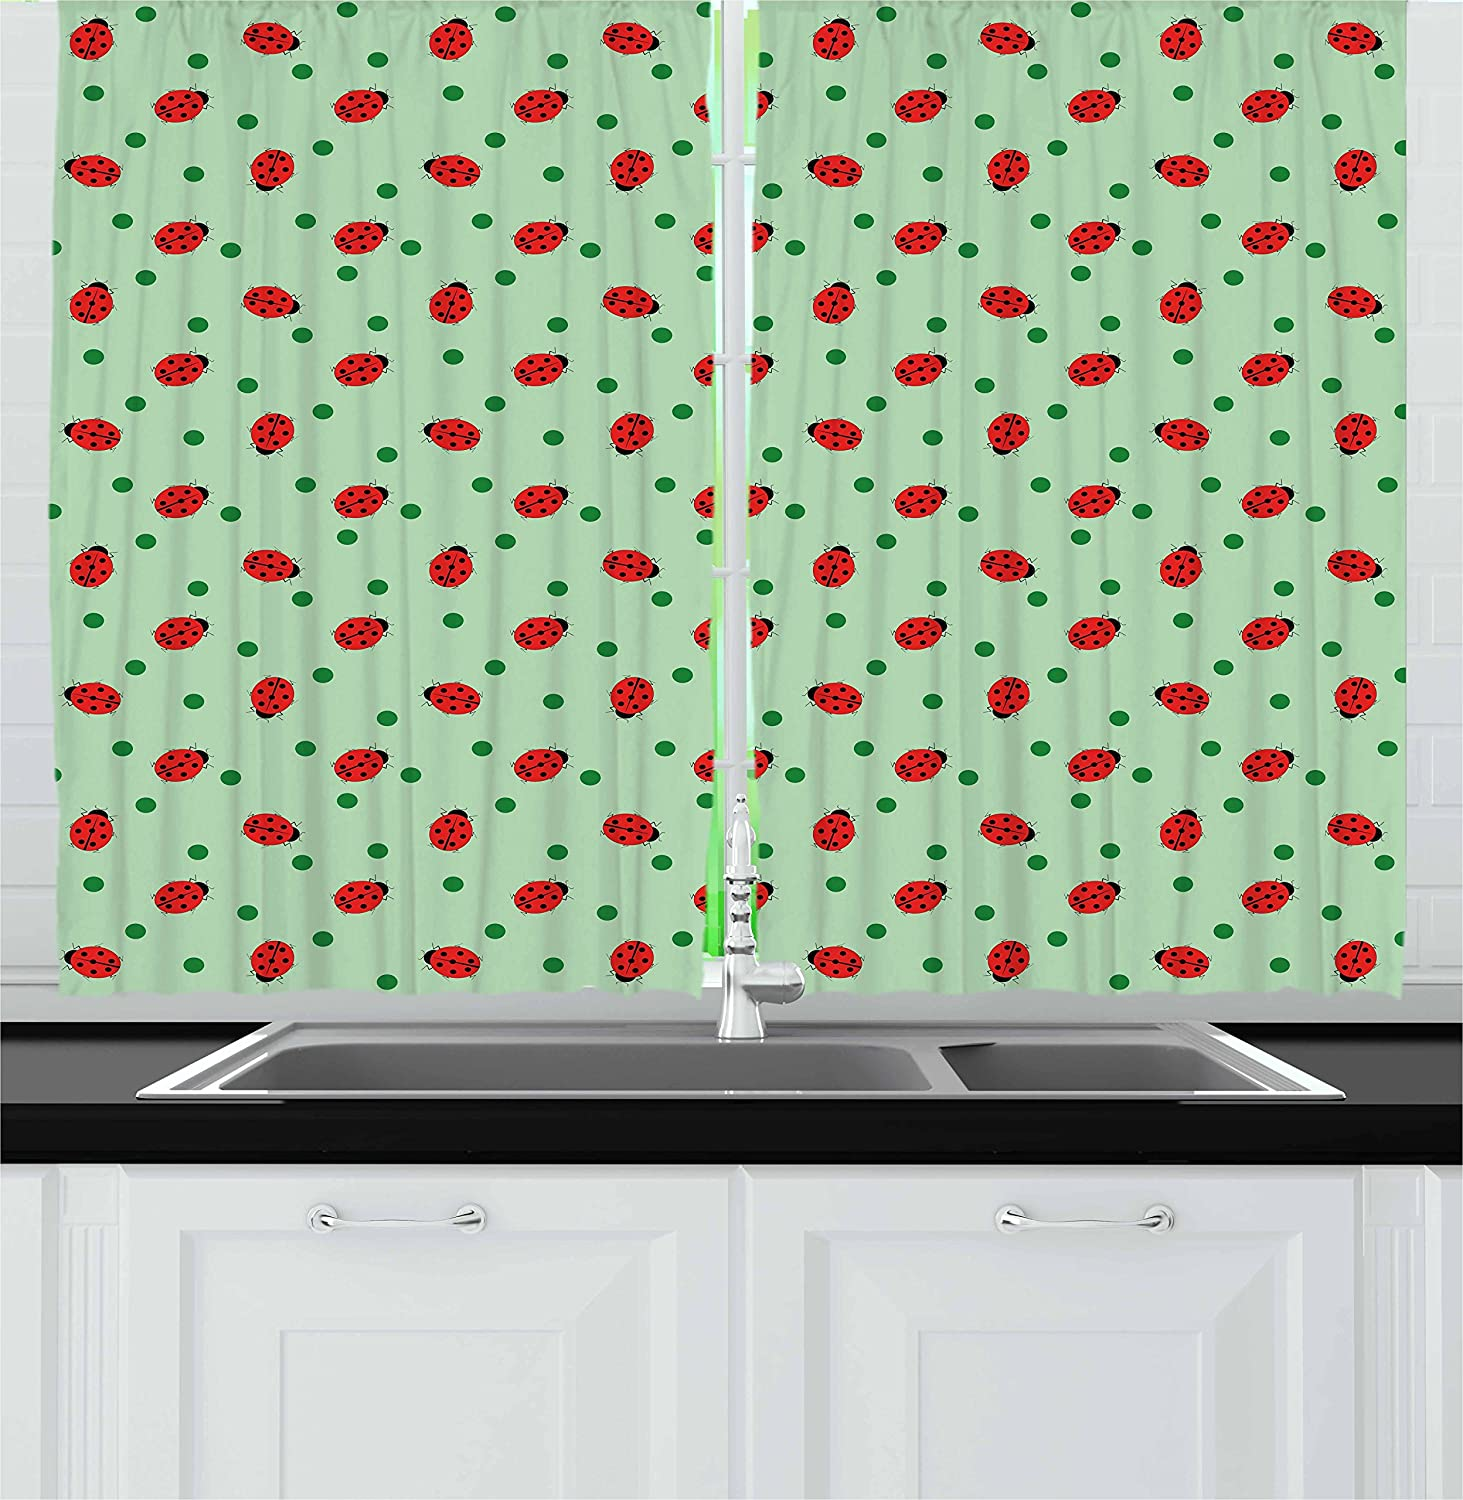 Amazon Com Ambesonne Ladybugs Kitchen Curtains Traditional Polka Dots Background Abstract Ladybug Insects Fun Design Window Drapes 2 Panel Set For Kitchen Cafe Decor 55 X 39 Green Red Black Home Kitchen